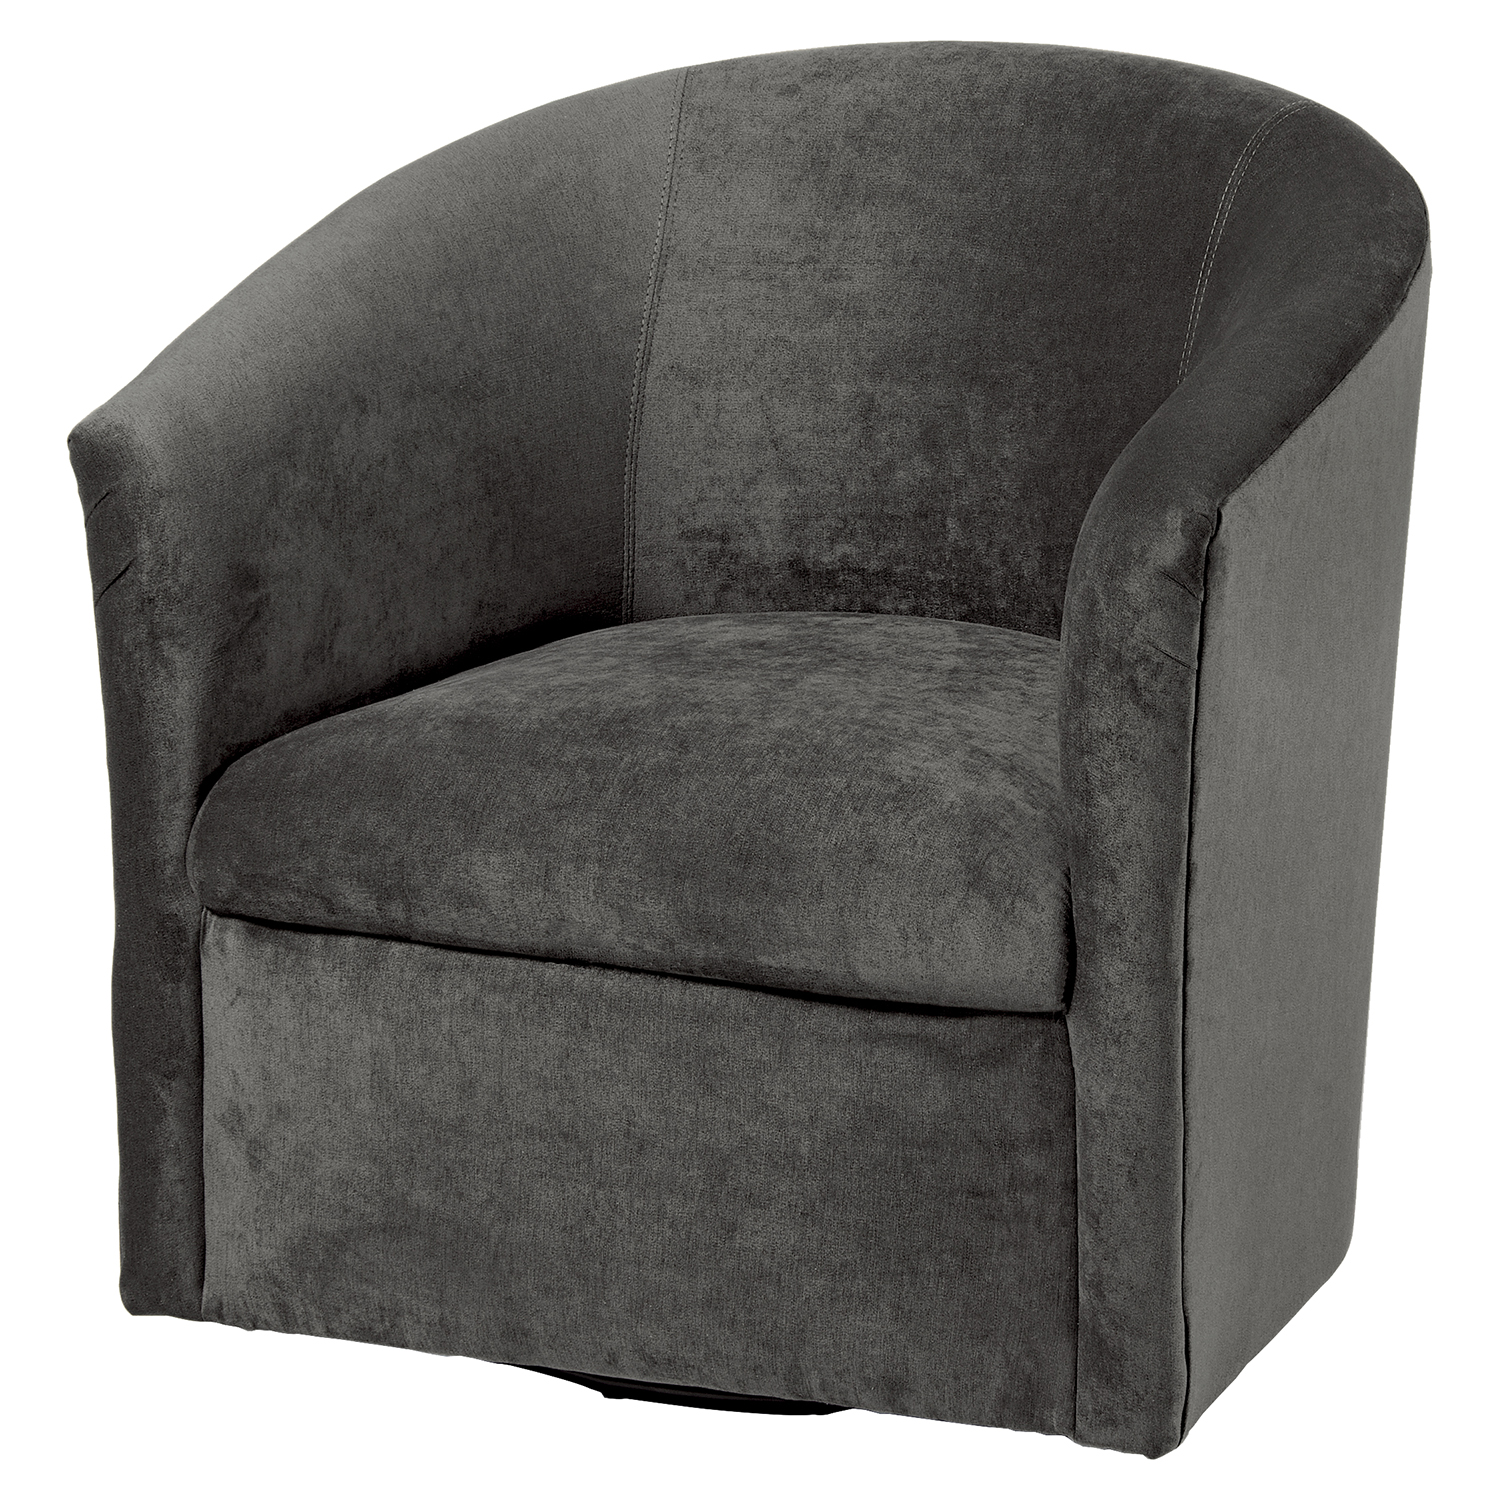 Elizabeth Swivel Chair - Ash